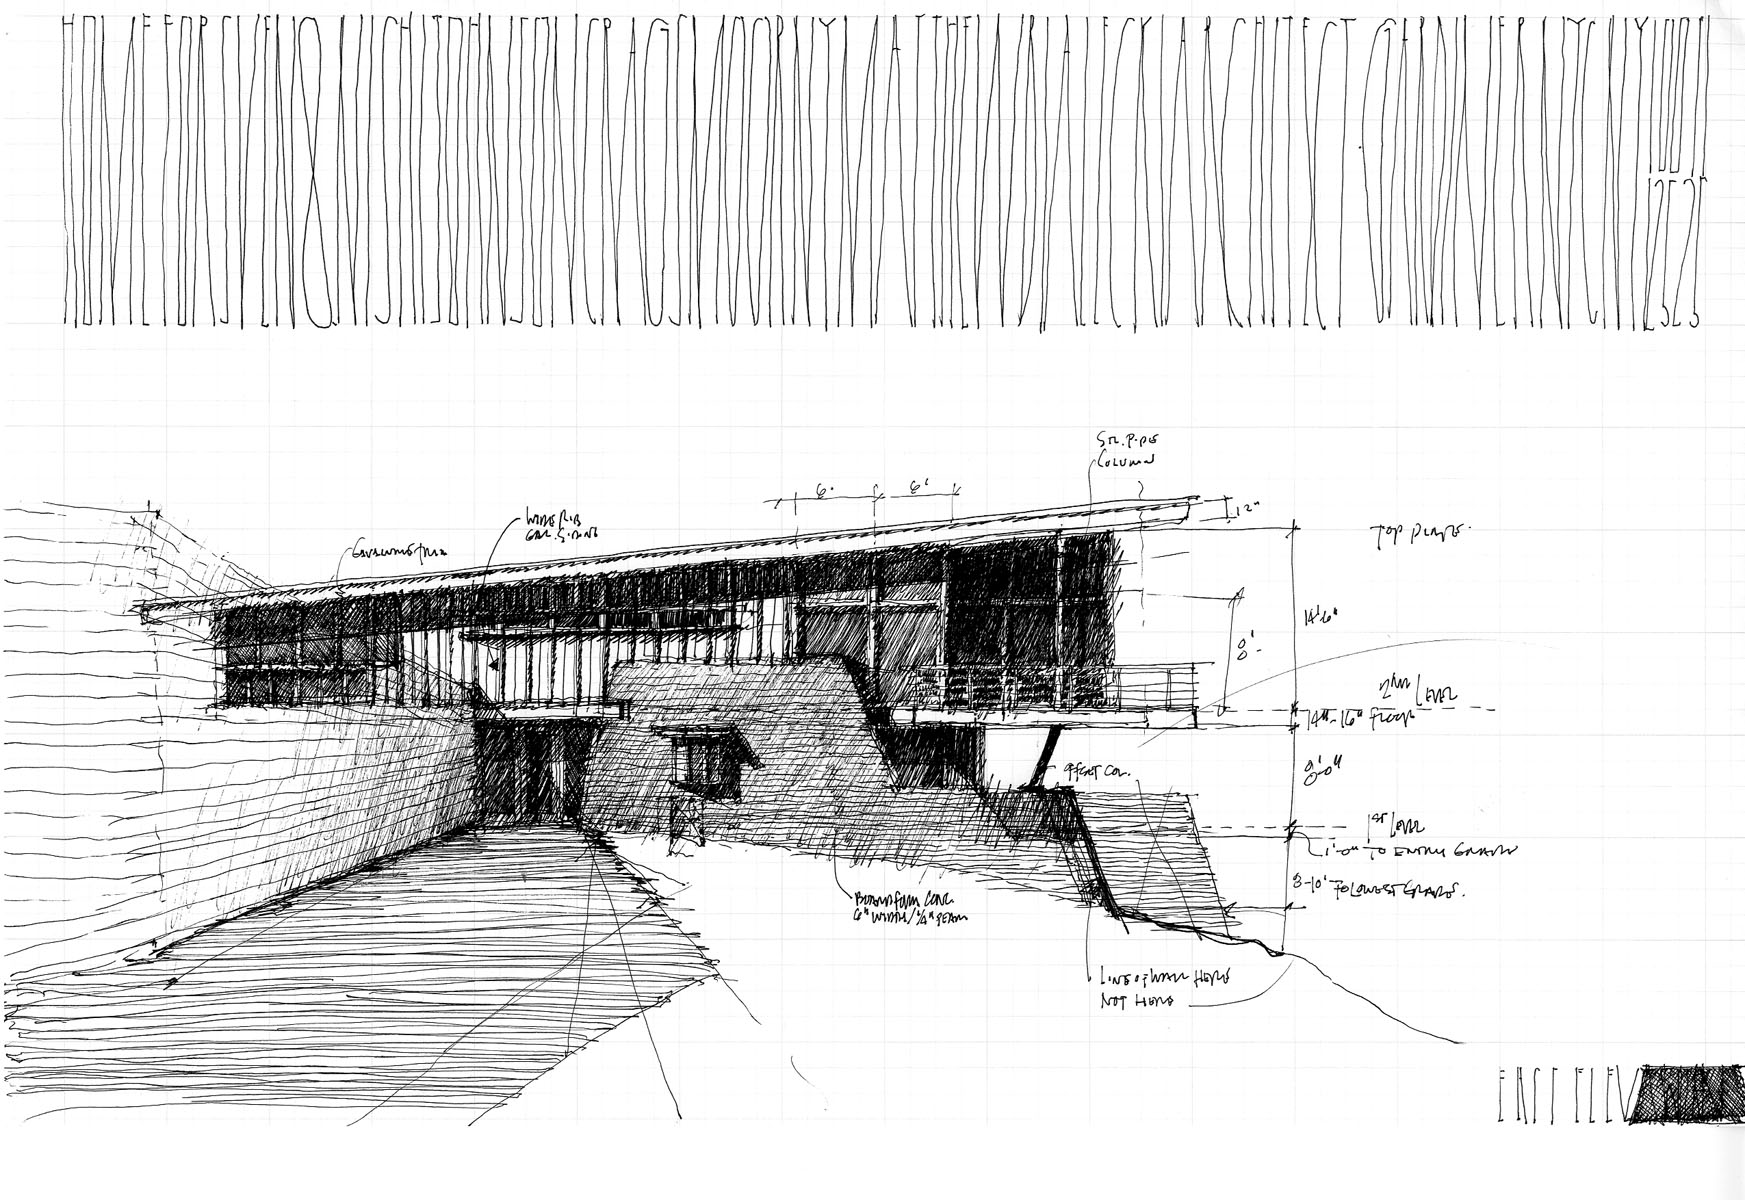 Entry Elevation Sketch